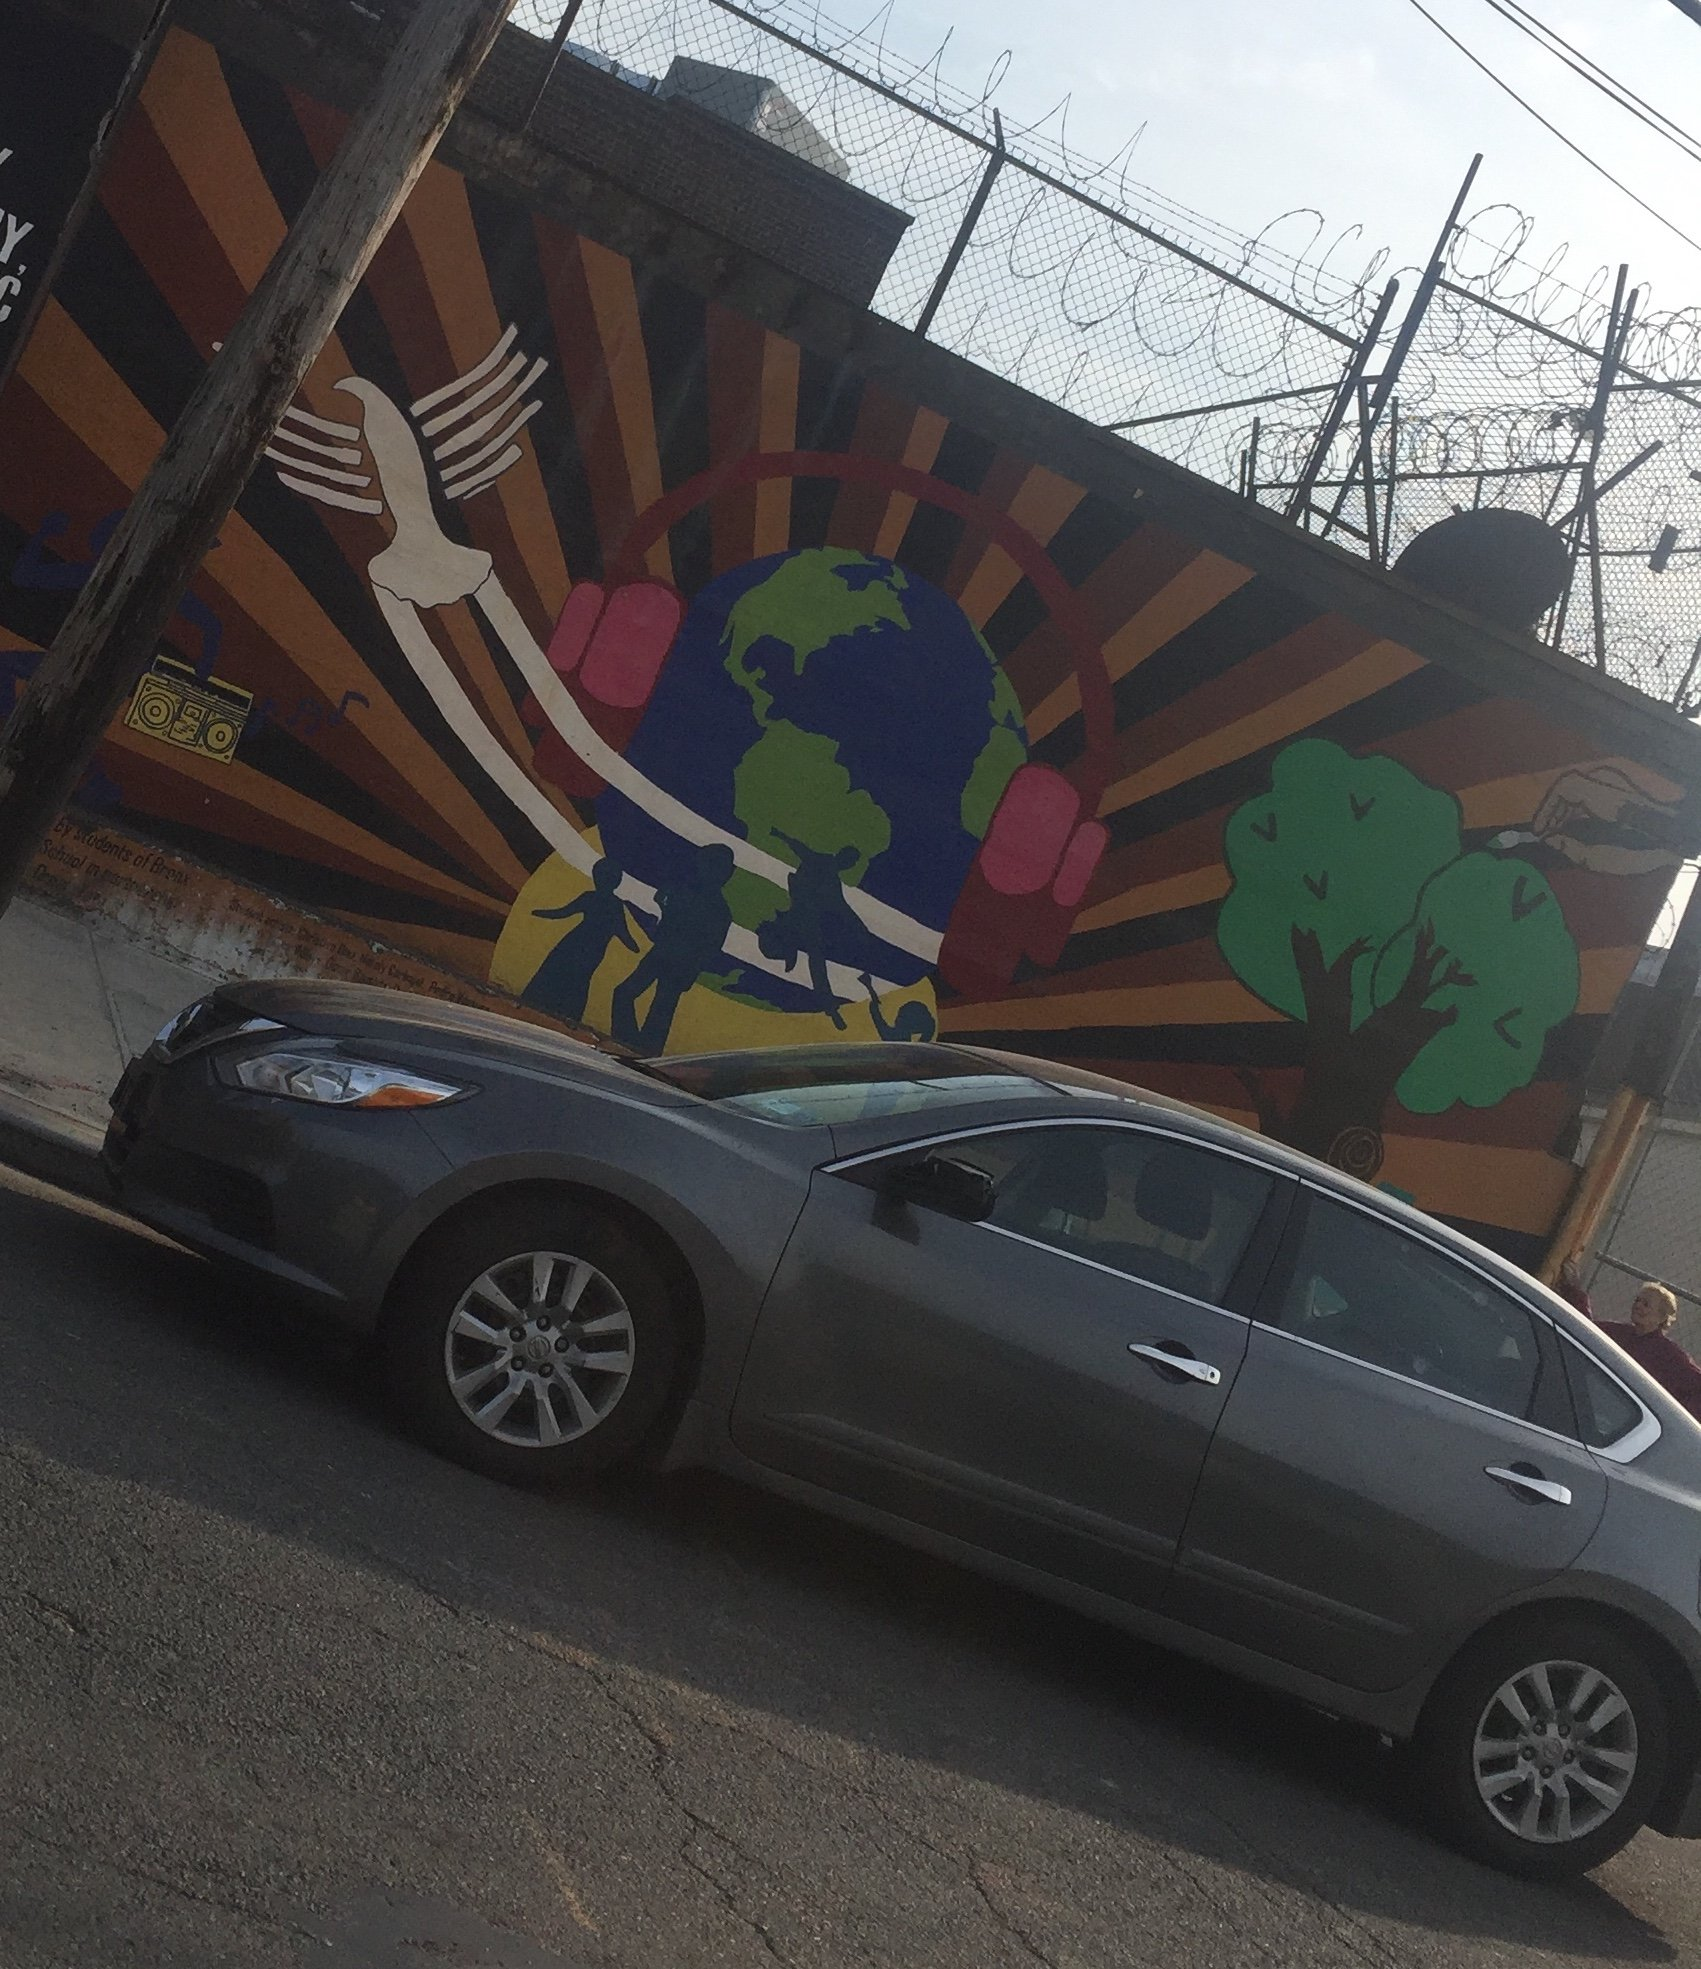 A mural created by DreamYard students on East 165th. (Photograph by author.)